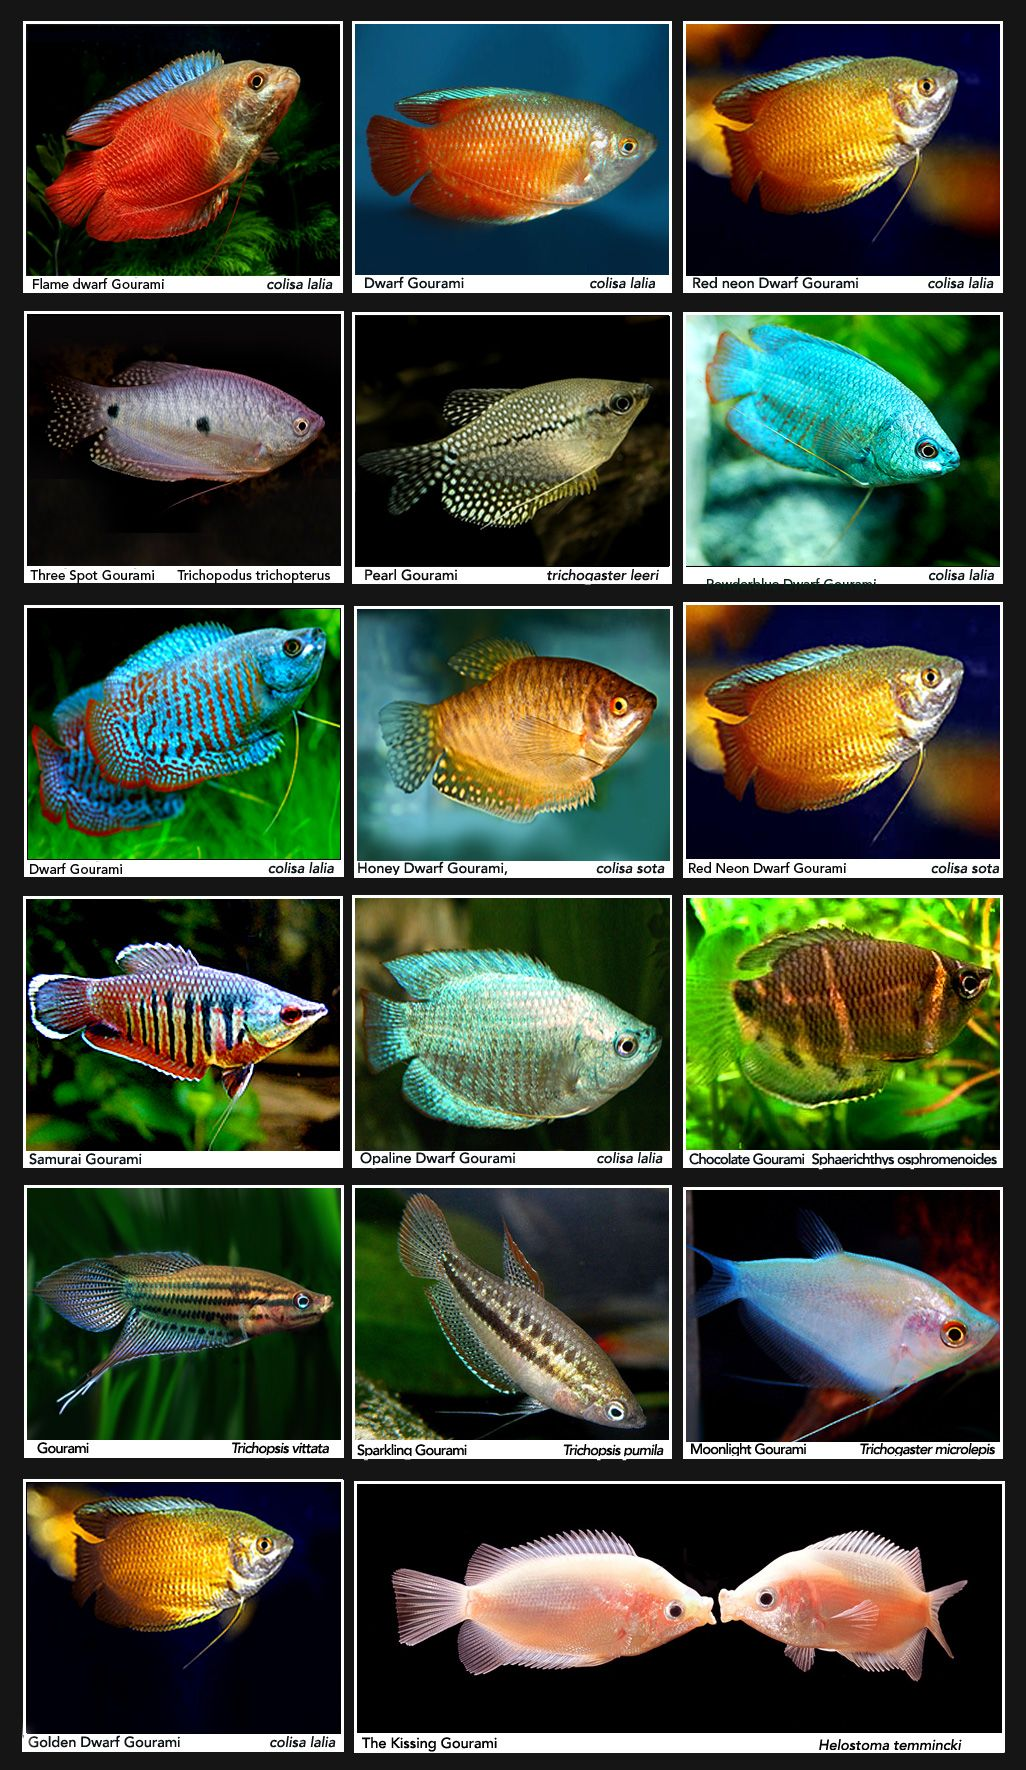 Gourami fish tank theme coraline by automattic for Freshwater aquarium fish list